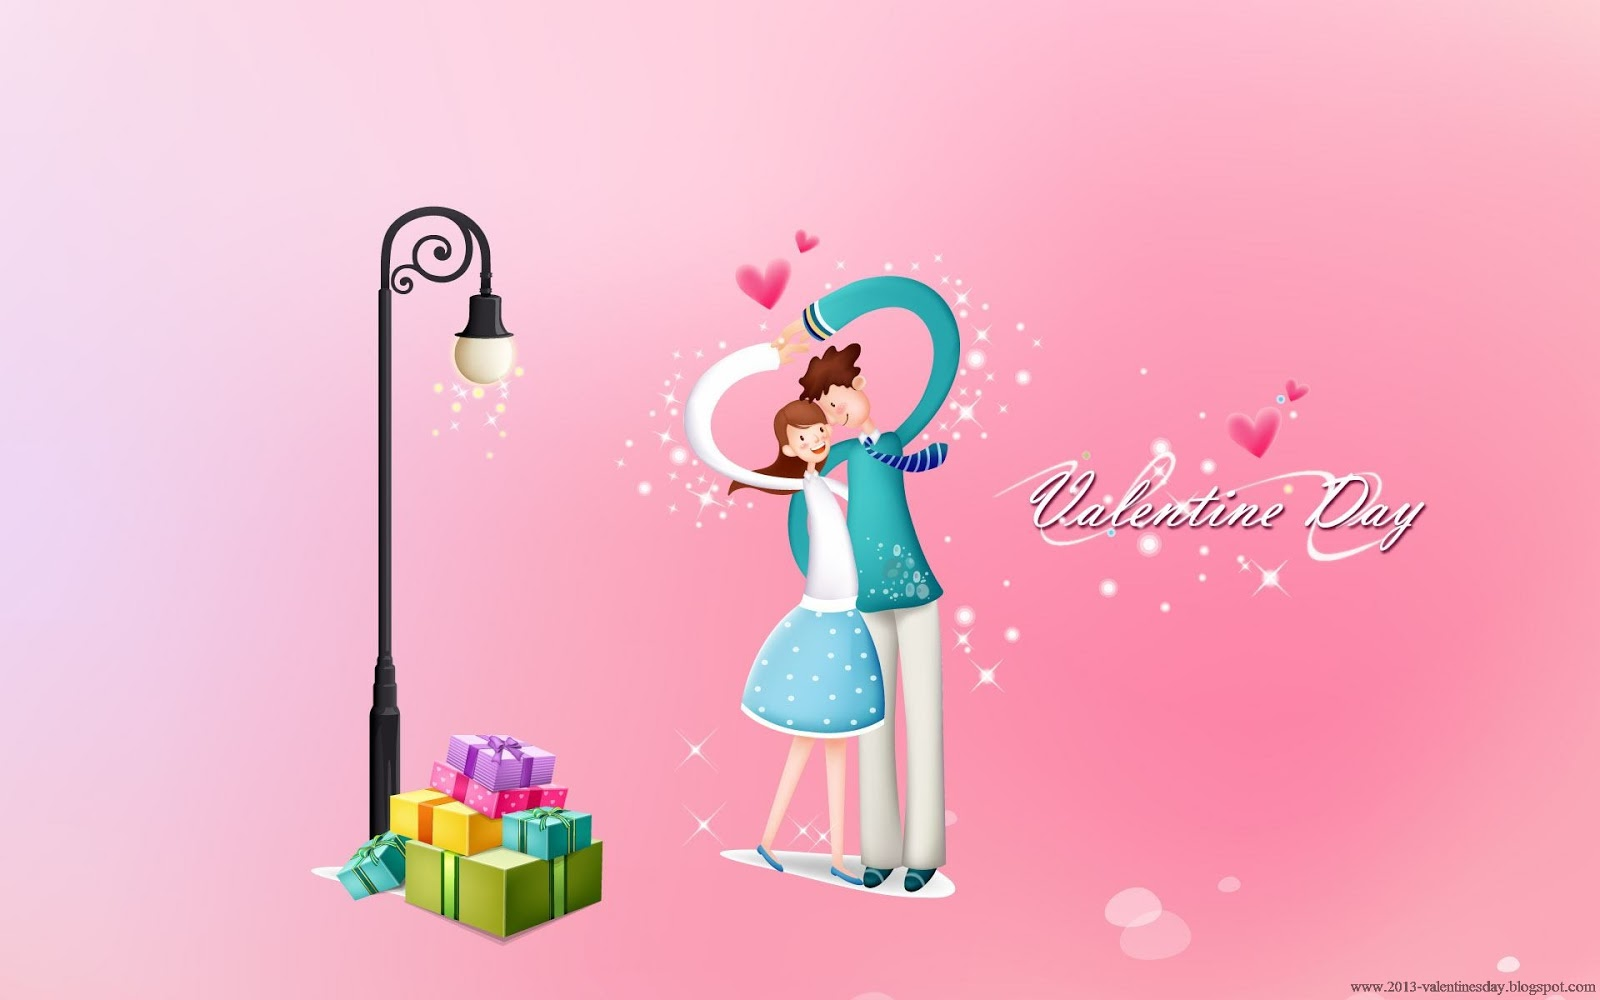 Beautiful Love Couple Cartoon HD Wallpaper Download - Cute+Cartoon+Love+HD+wallpapers+%25281%2529  Graphic_391613.jpg